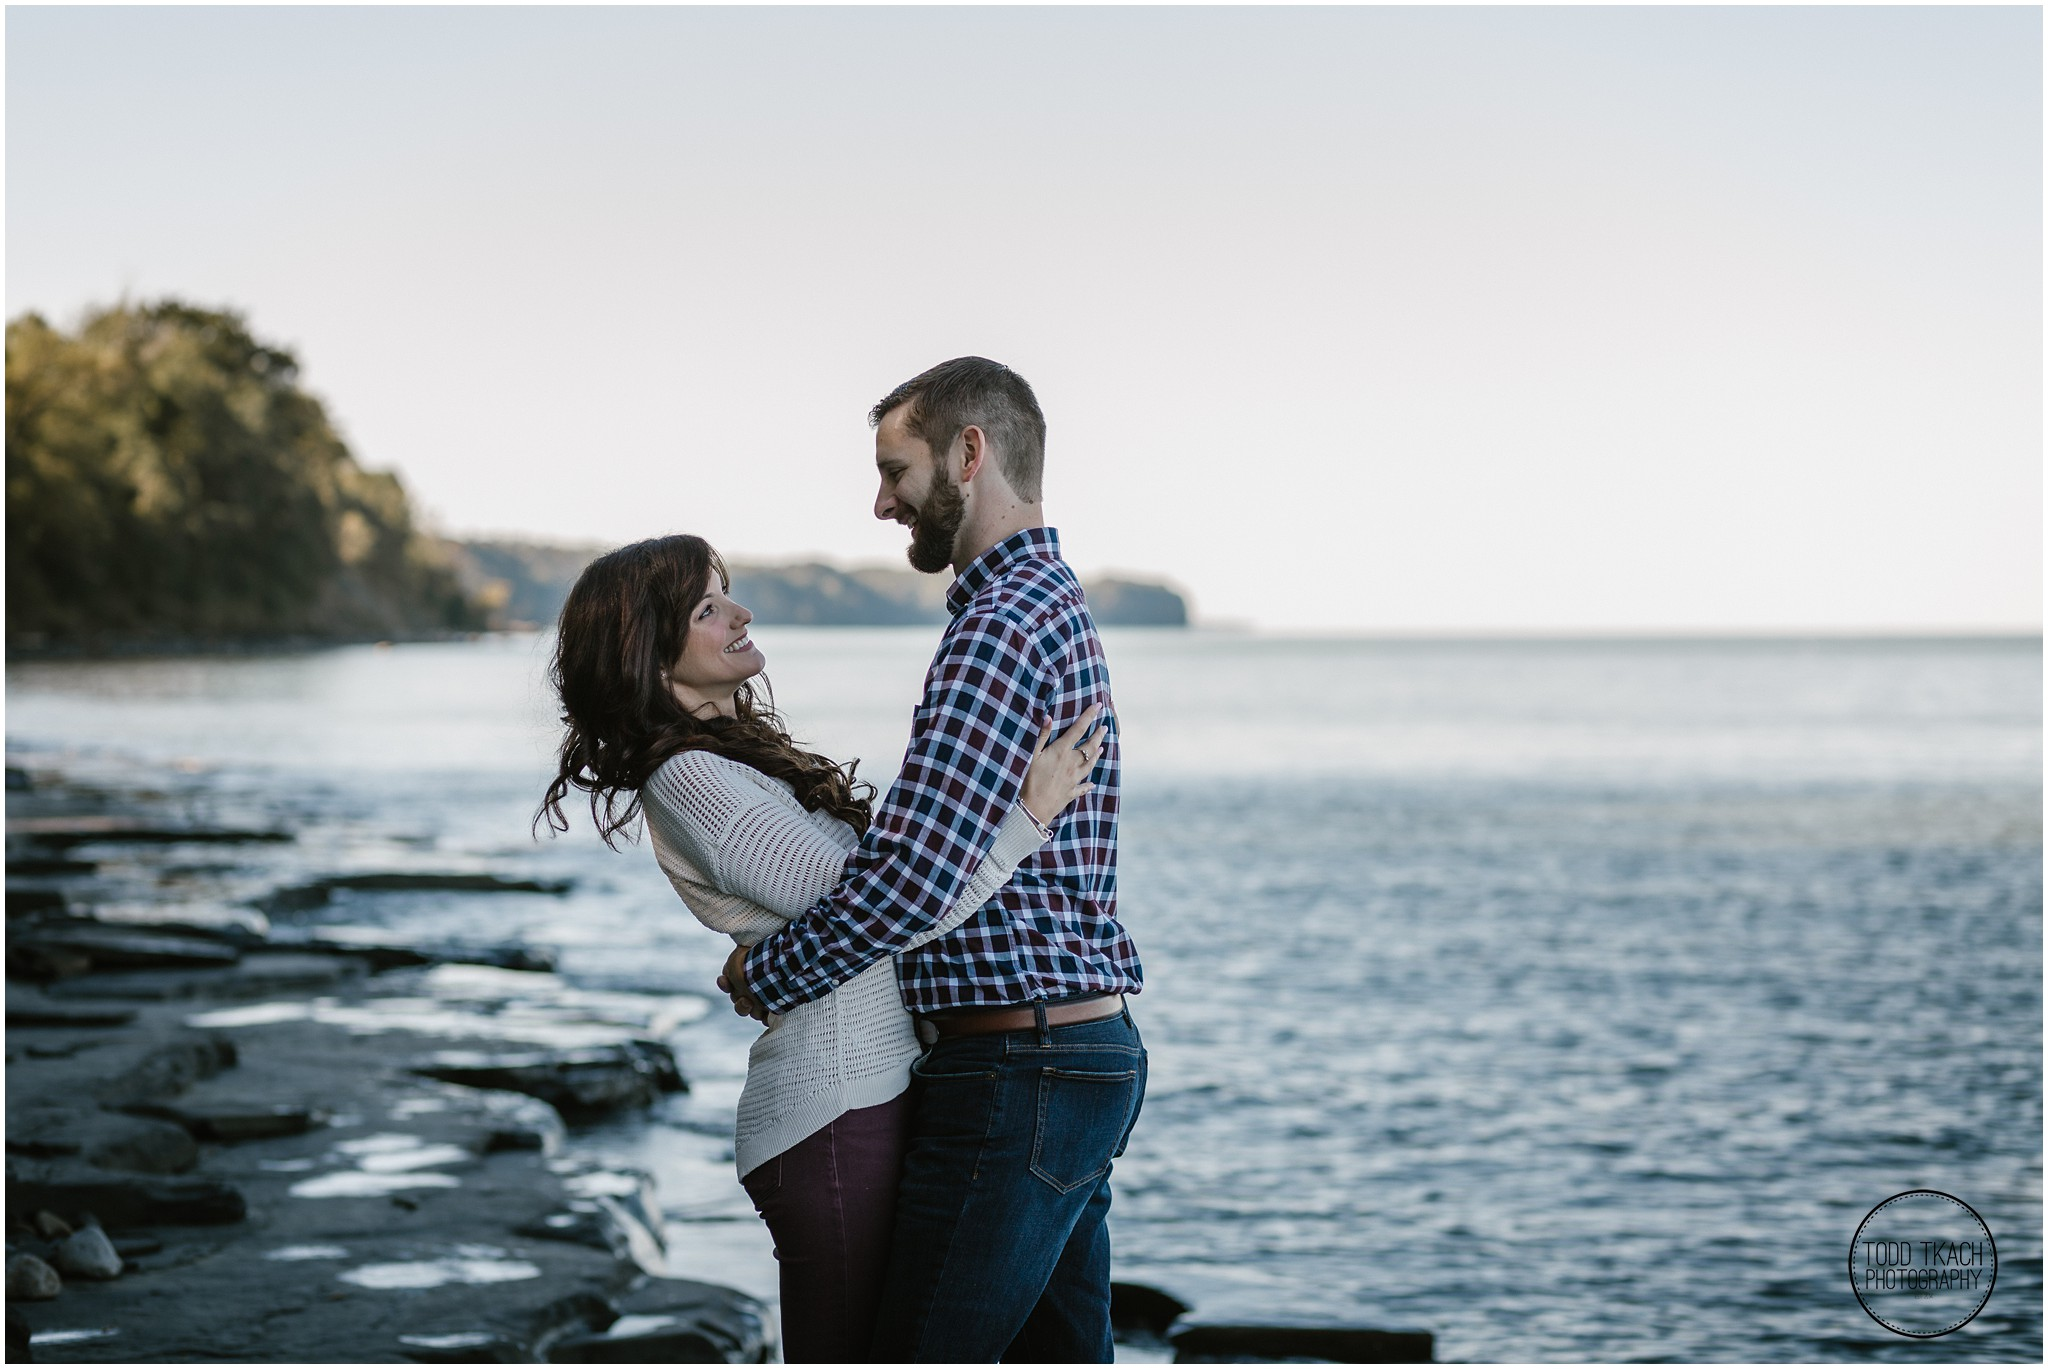 Jessica & Todd Engagement Waterfront Embrace